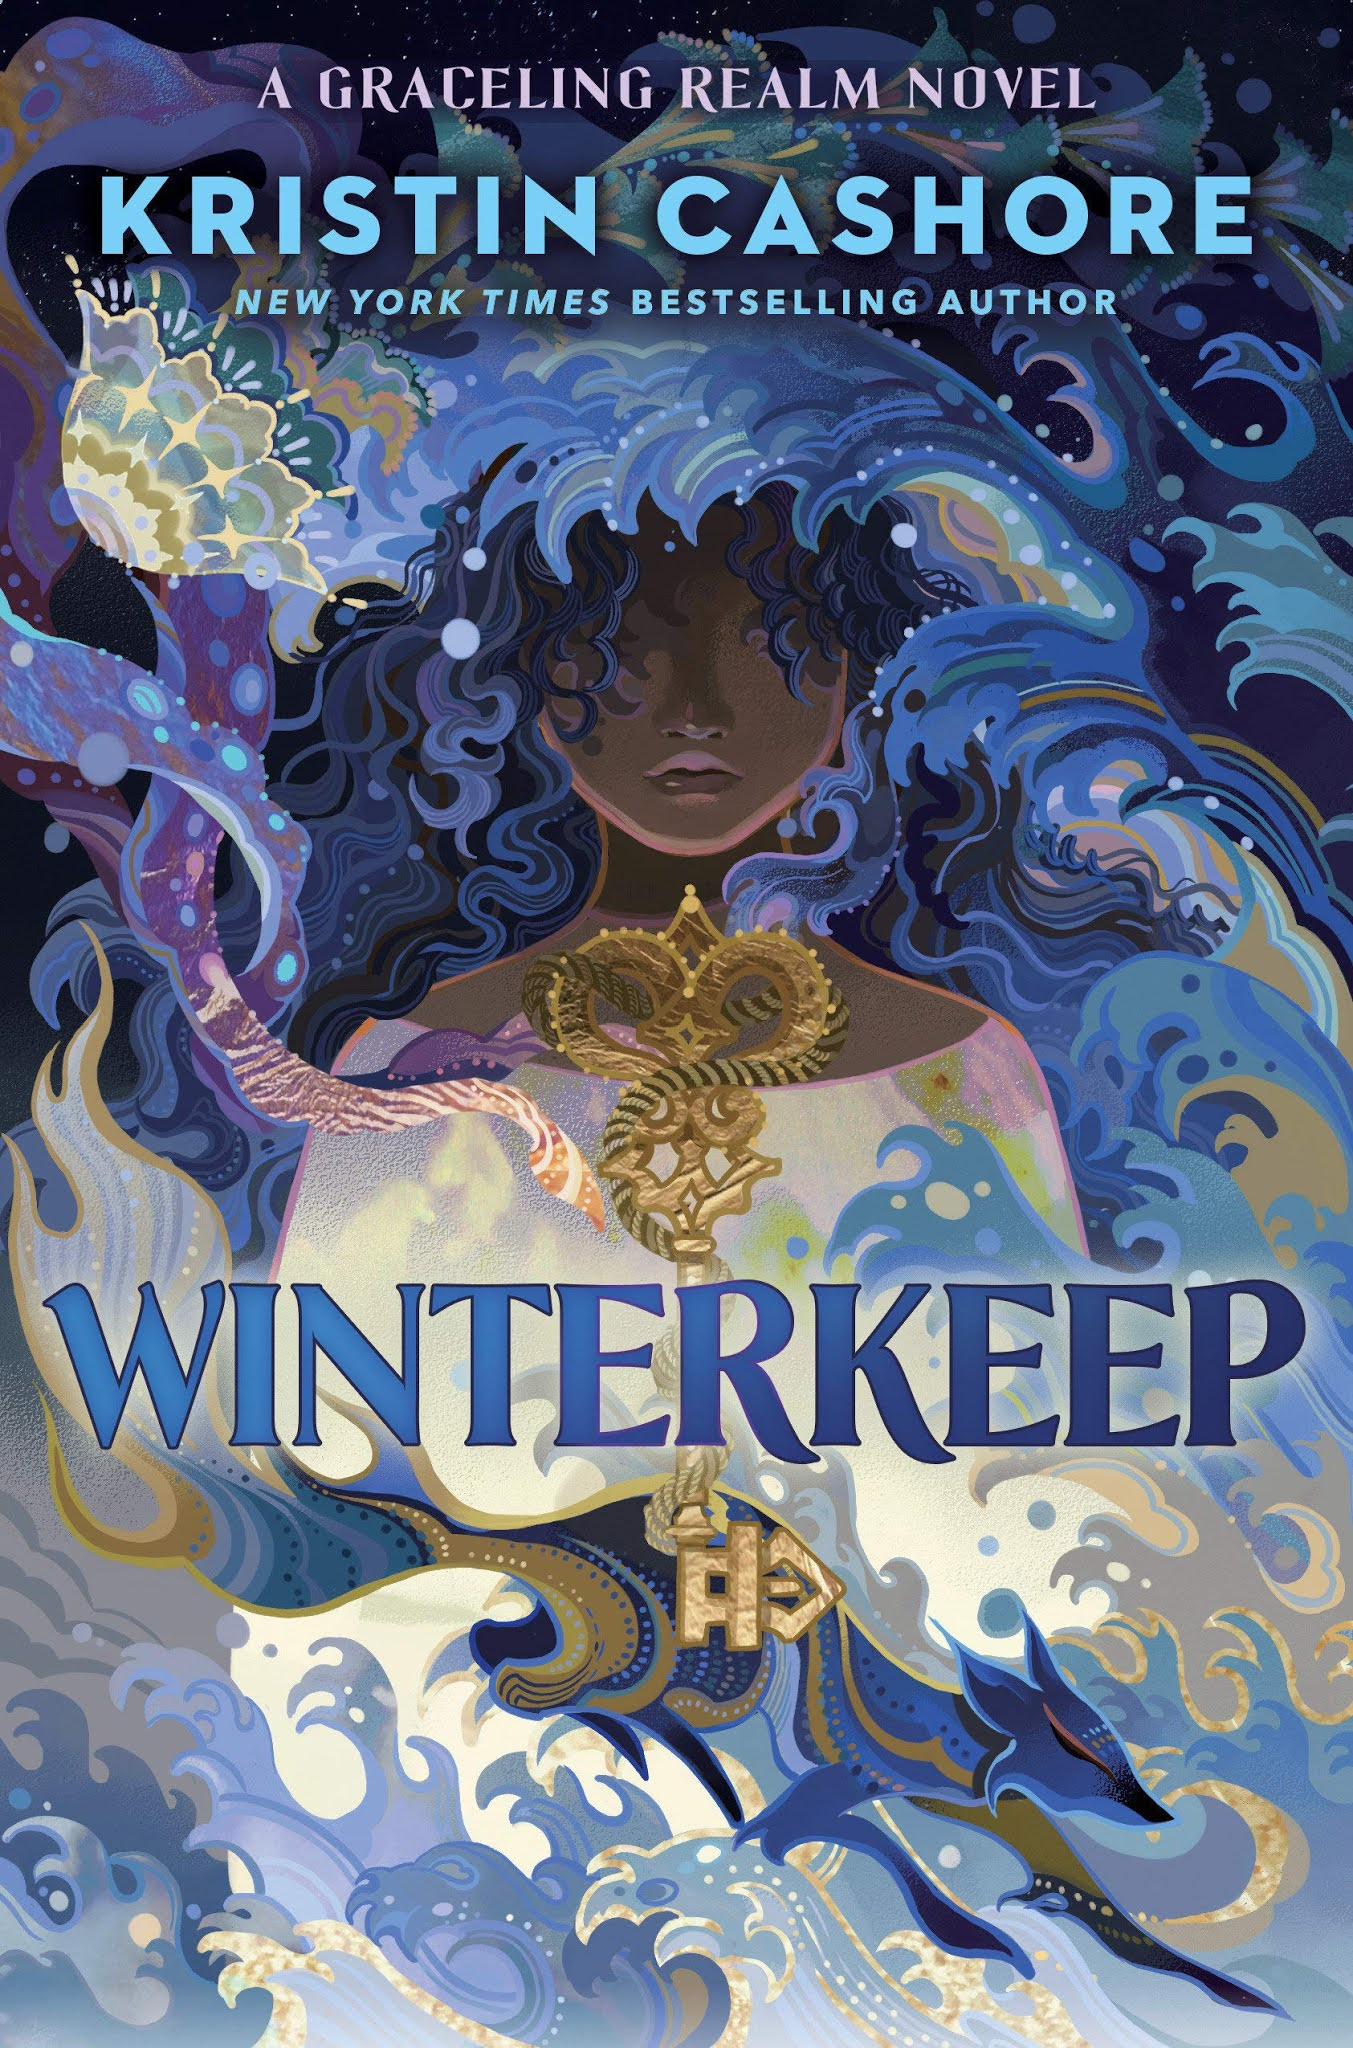 Winterkeep by Kristin Cashore